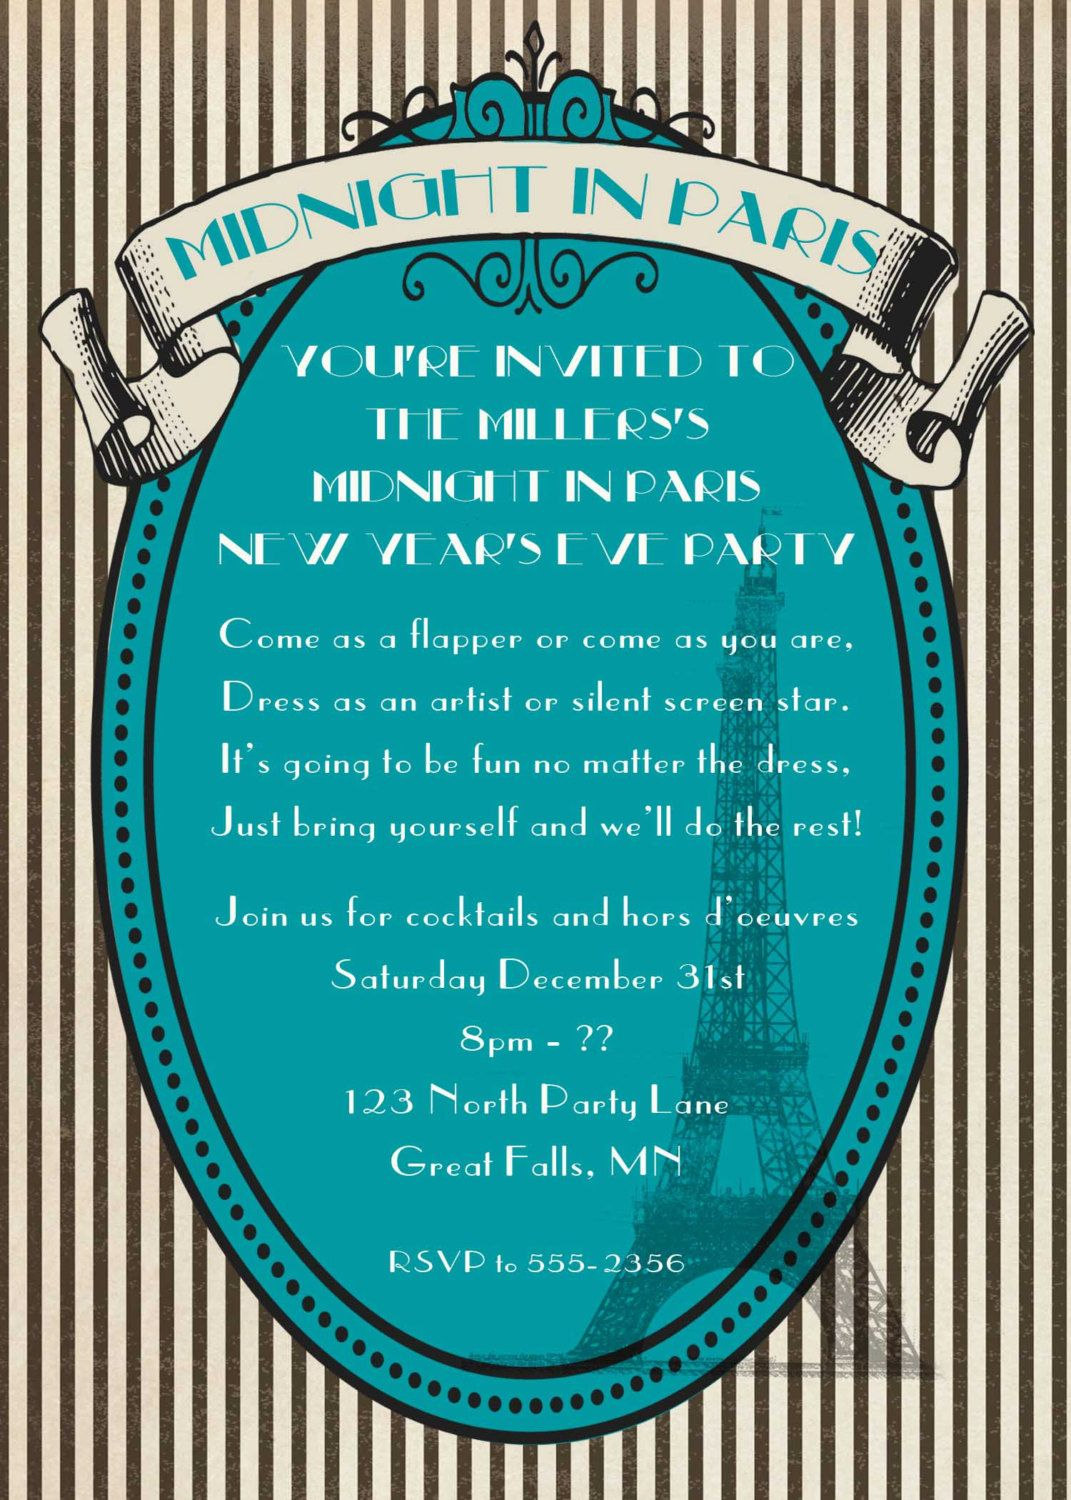 New Years Eve Party Invitation Midnight In Paris Invitation Bright Design With Photo Black And White Birthday Party Checklist Paris Invitations Paris Party